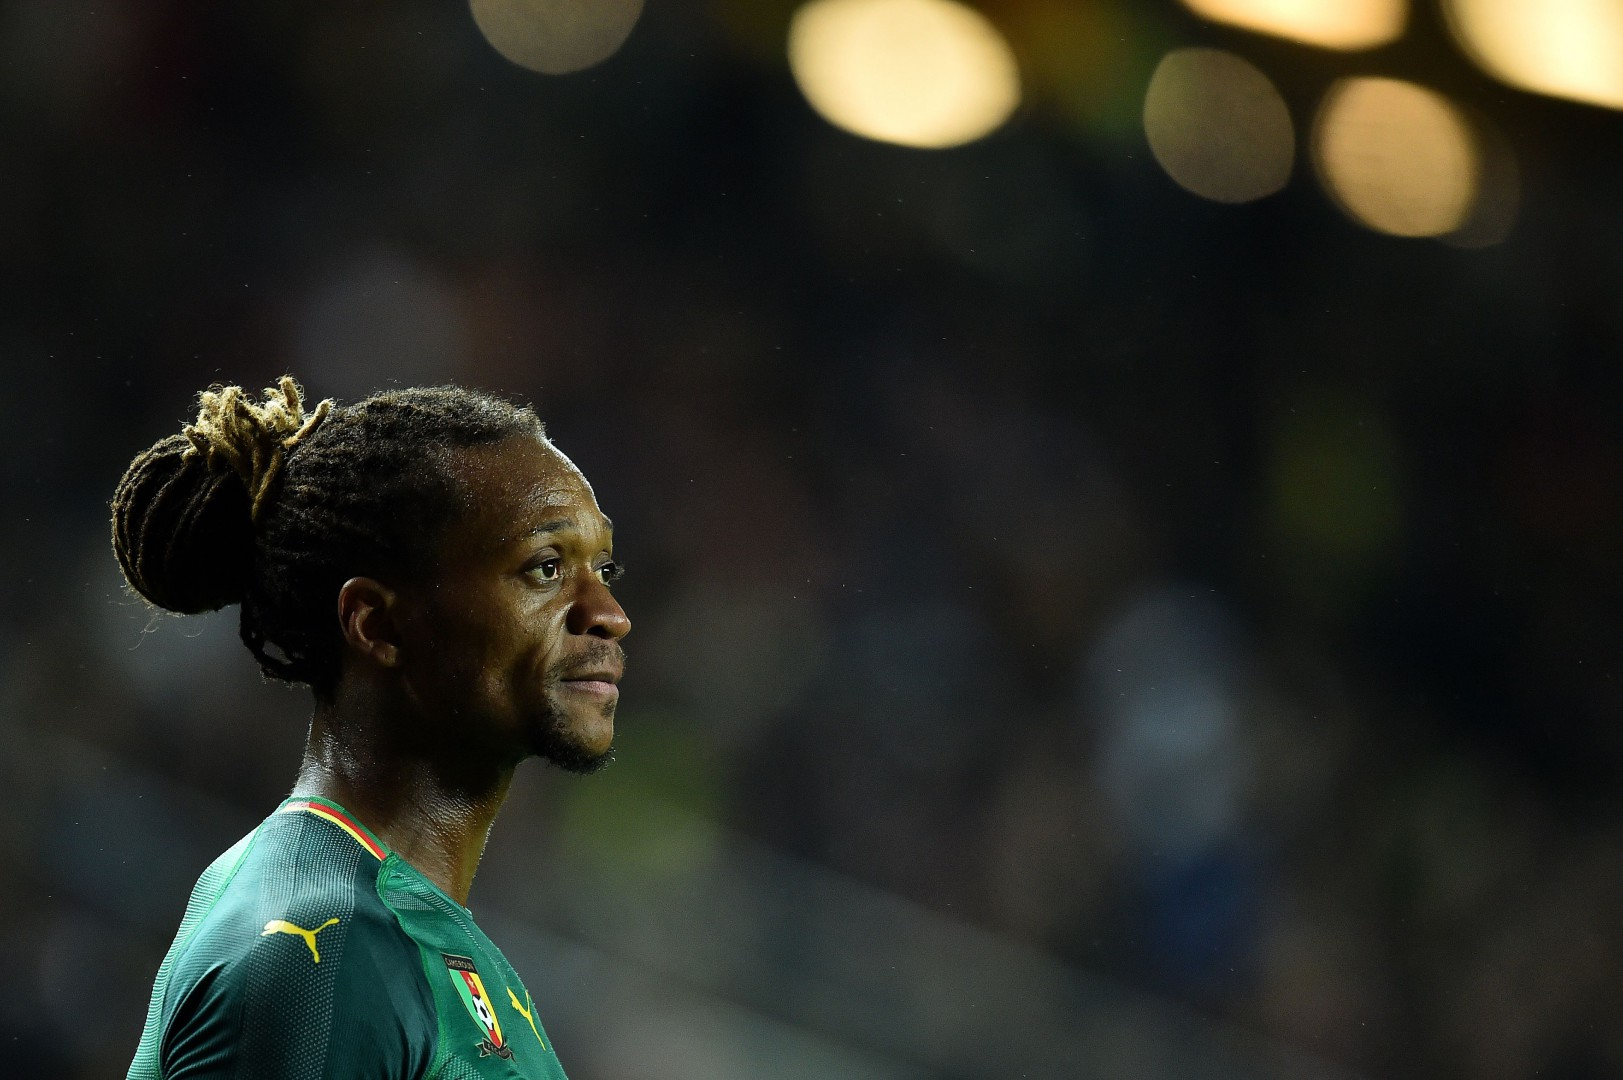 Cameroon's defender Gaetan Bong reacts during the international friendly football match between Brazil and Cameroon at Stadium MK in Milton Keynes, central England, on November 20, 2018. (Photo by Glyn KIRK / AFP)